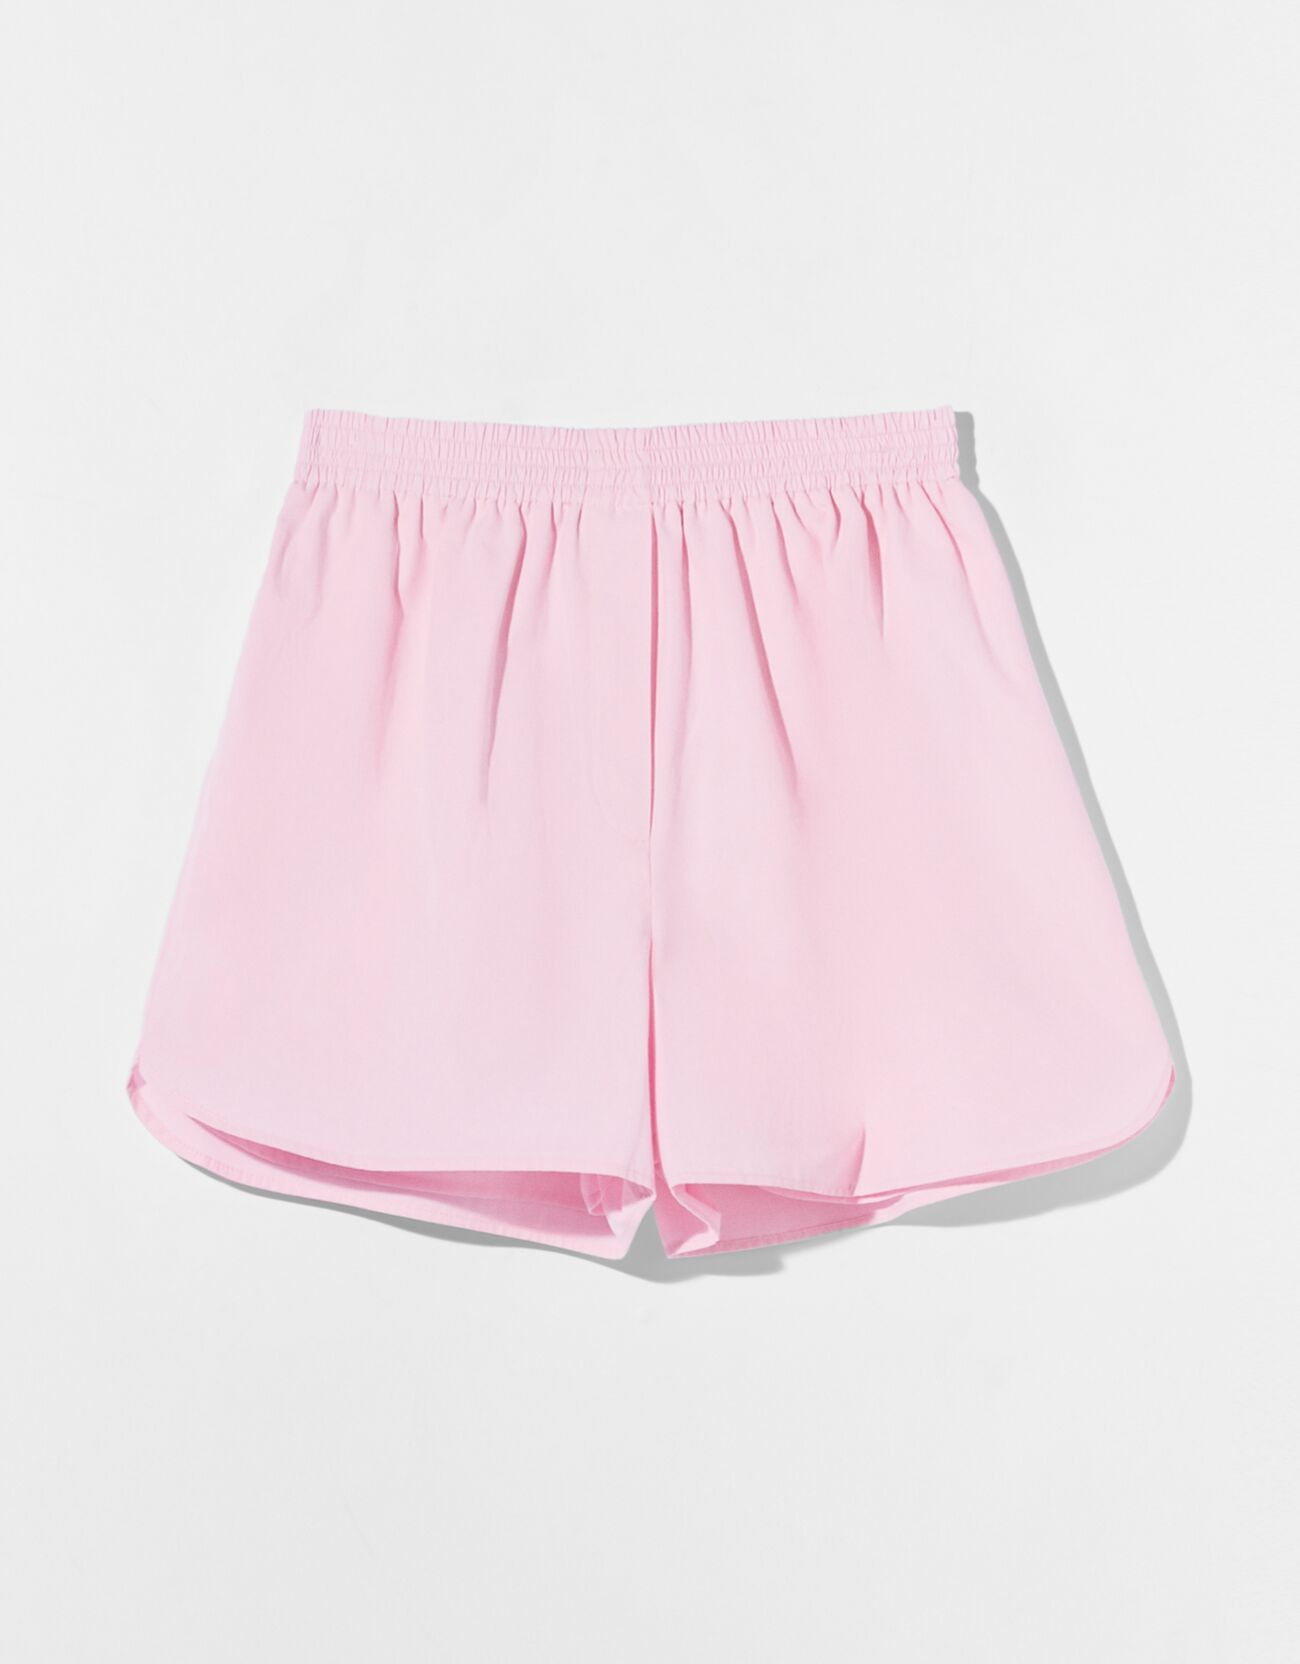 Short popelín de color rosa.